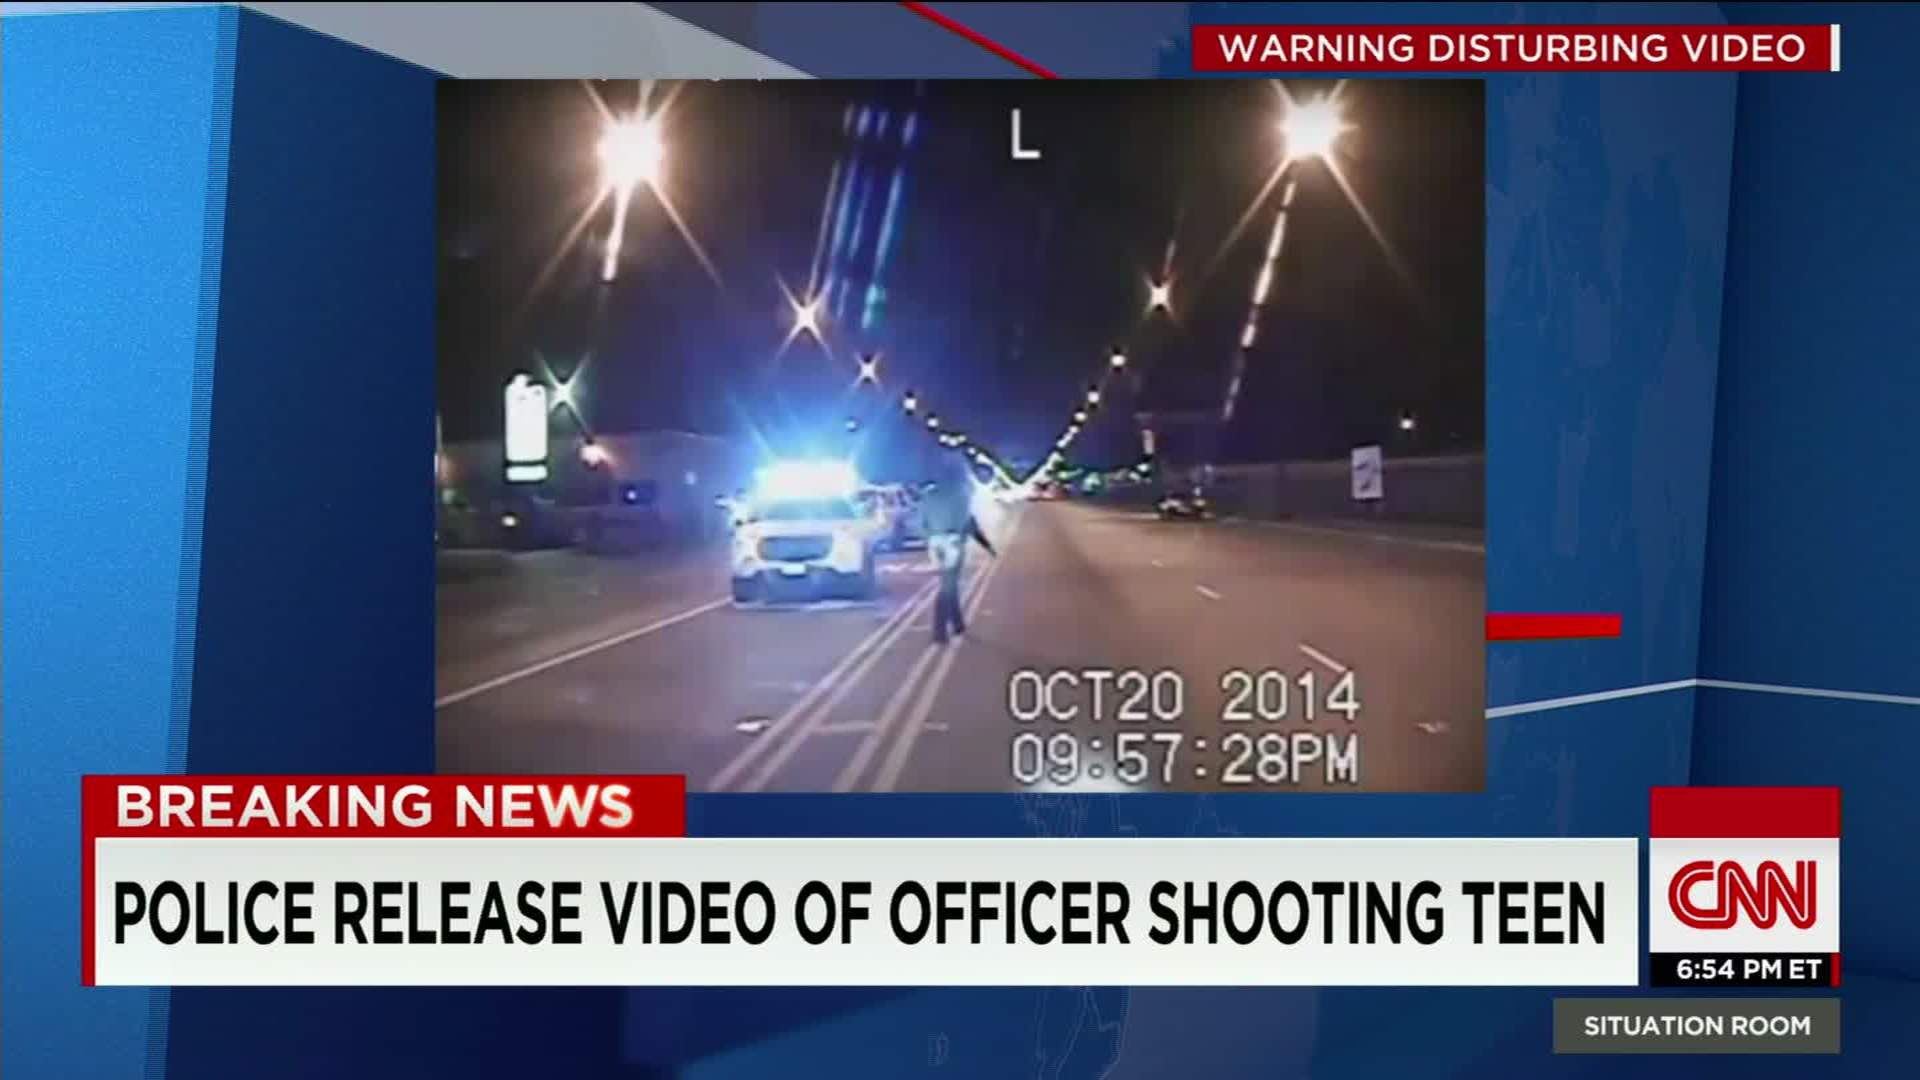 Video shows cop shoot teen - CNN Video